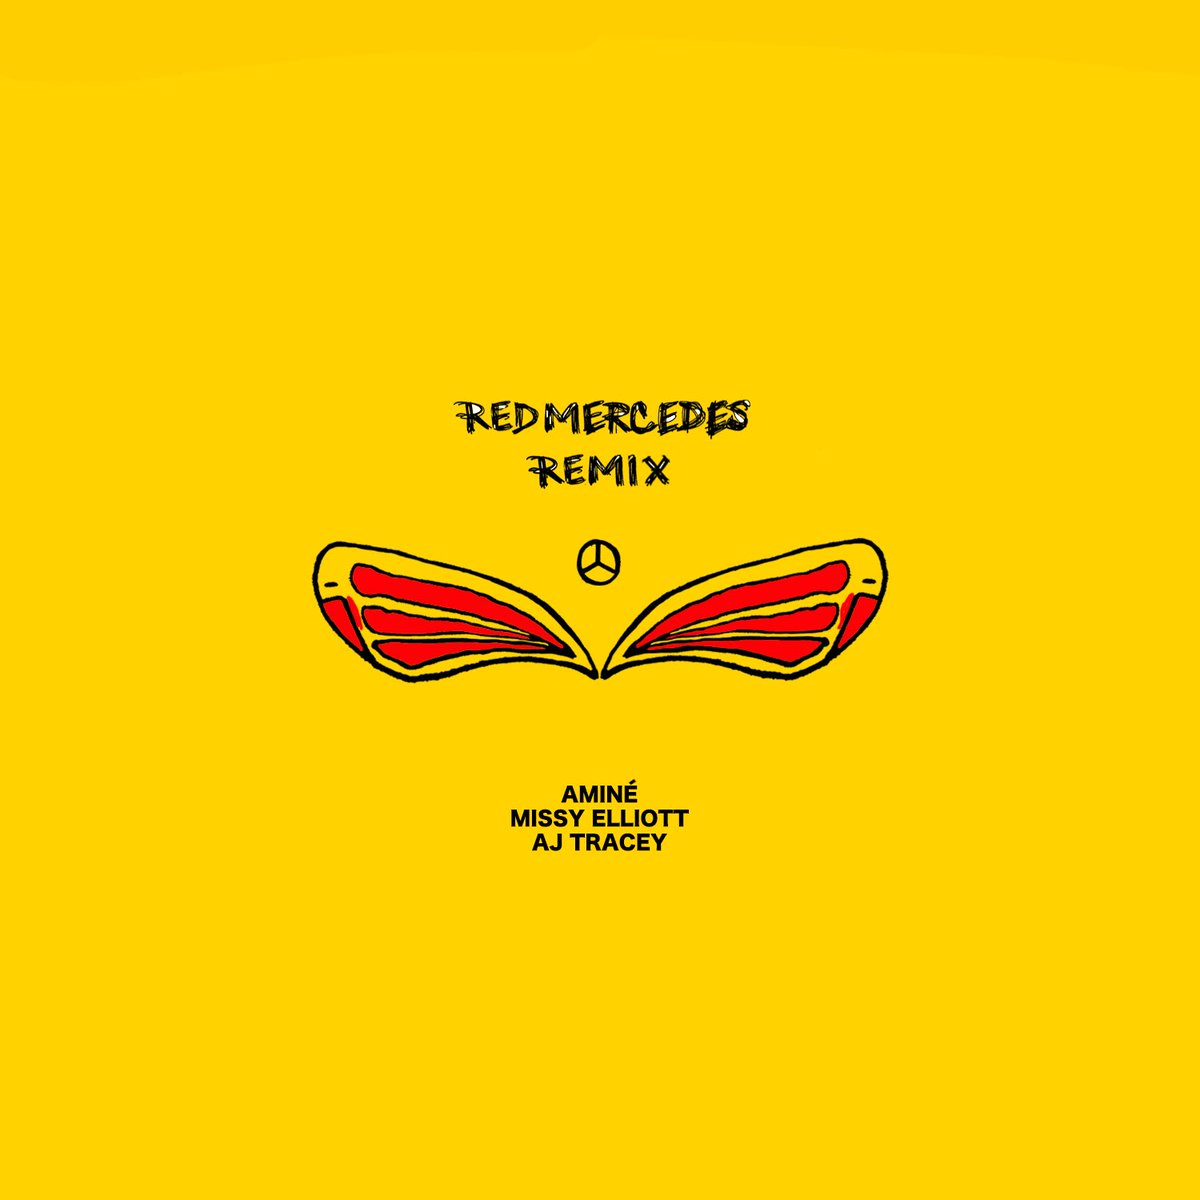 Mercedes Of Portland >> Amine Enlists Missy Elliott & AJ Tracey on Remix of 'REDMERCEDES' — Listen | HipHop-N-More